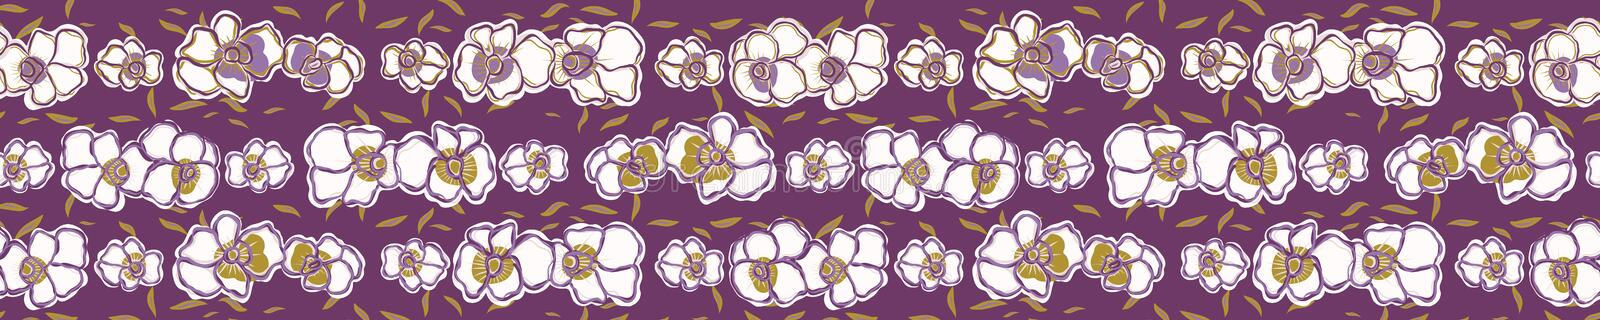 Pretty bold flower pansy blooms border. Seamless repeating. vector illustration